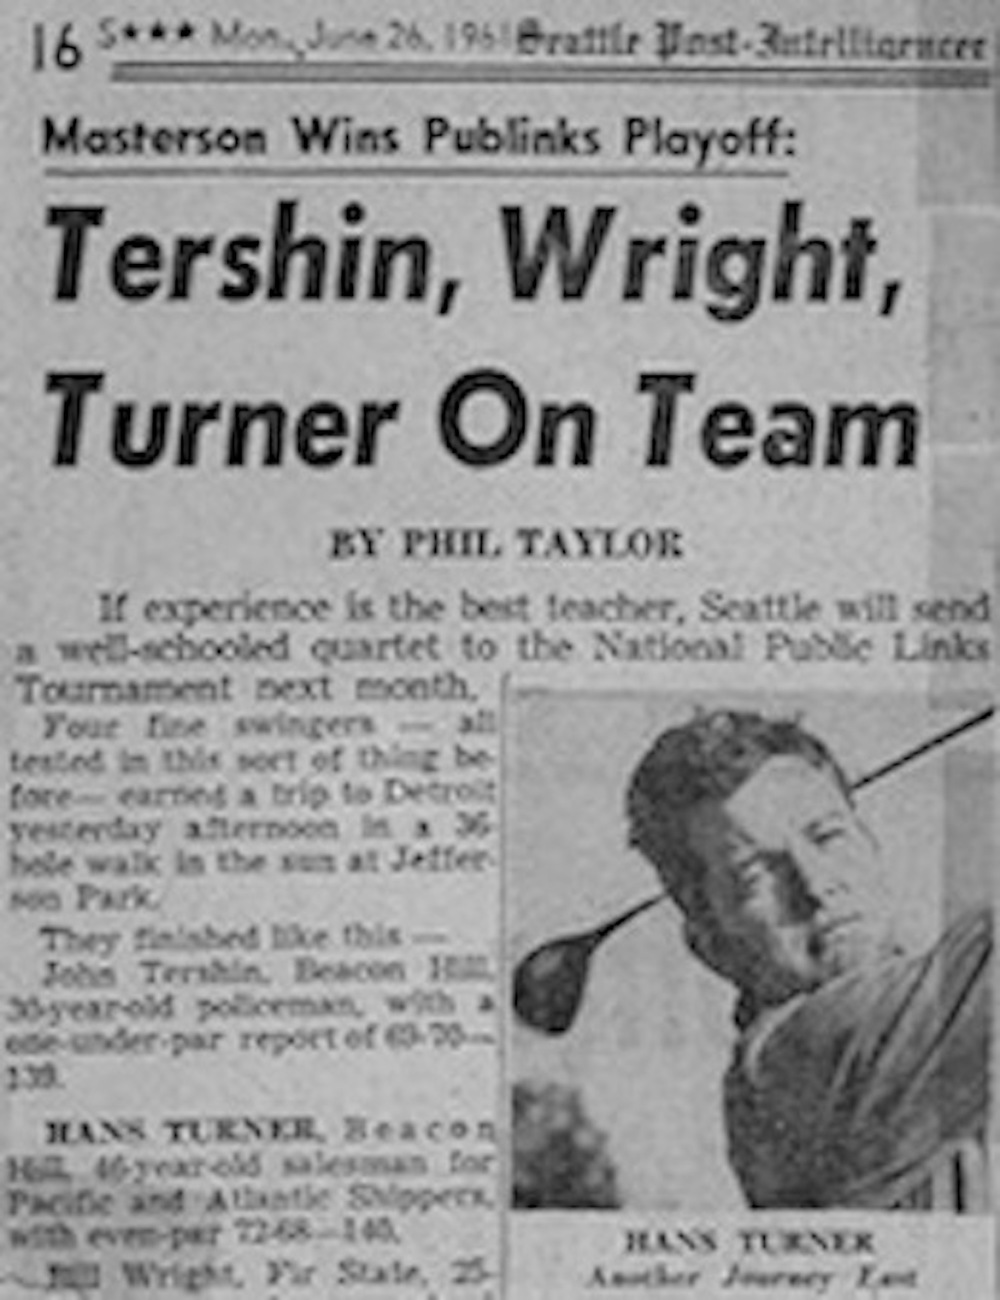 Hans Turner (Jay's dad) in a news article on his U.S. Public Links qualifying in 1961.